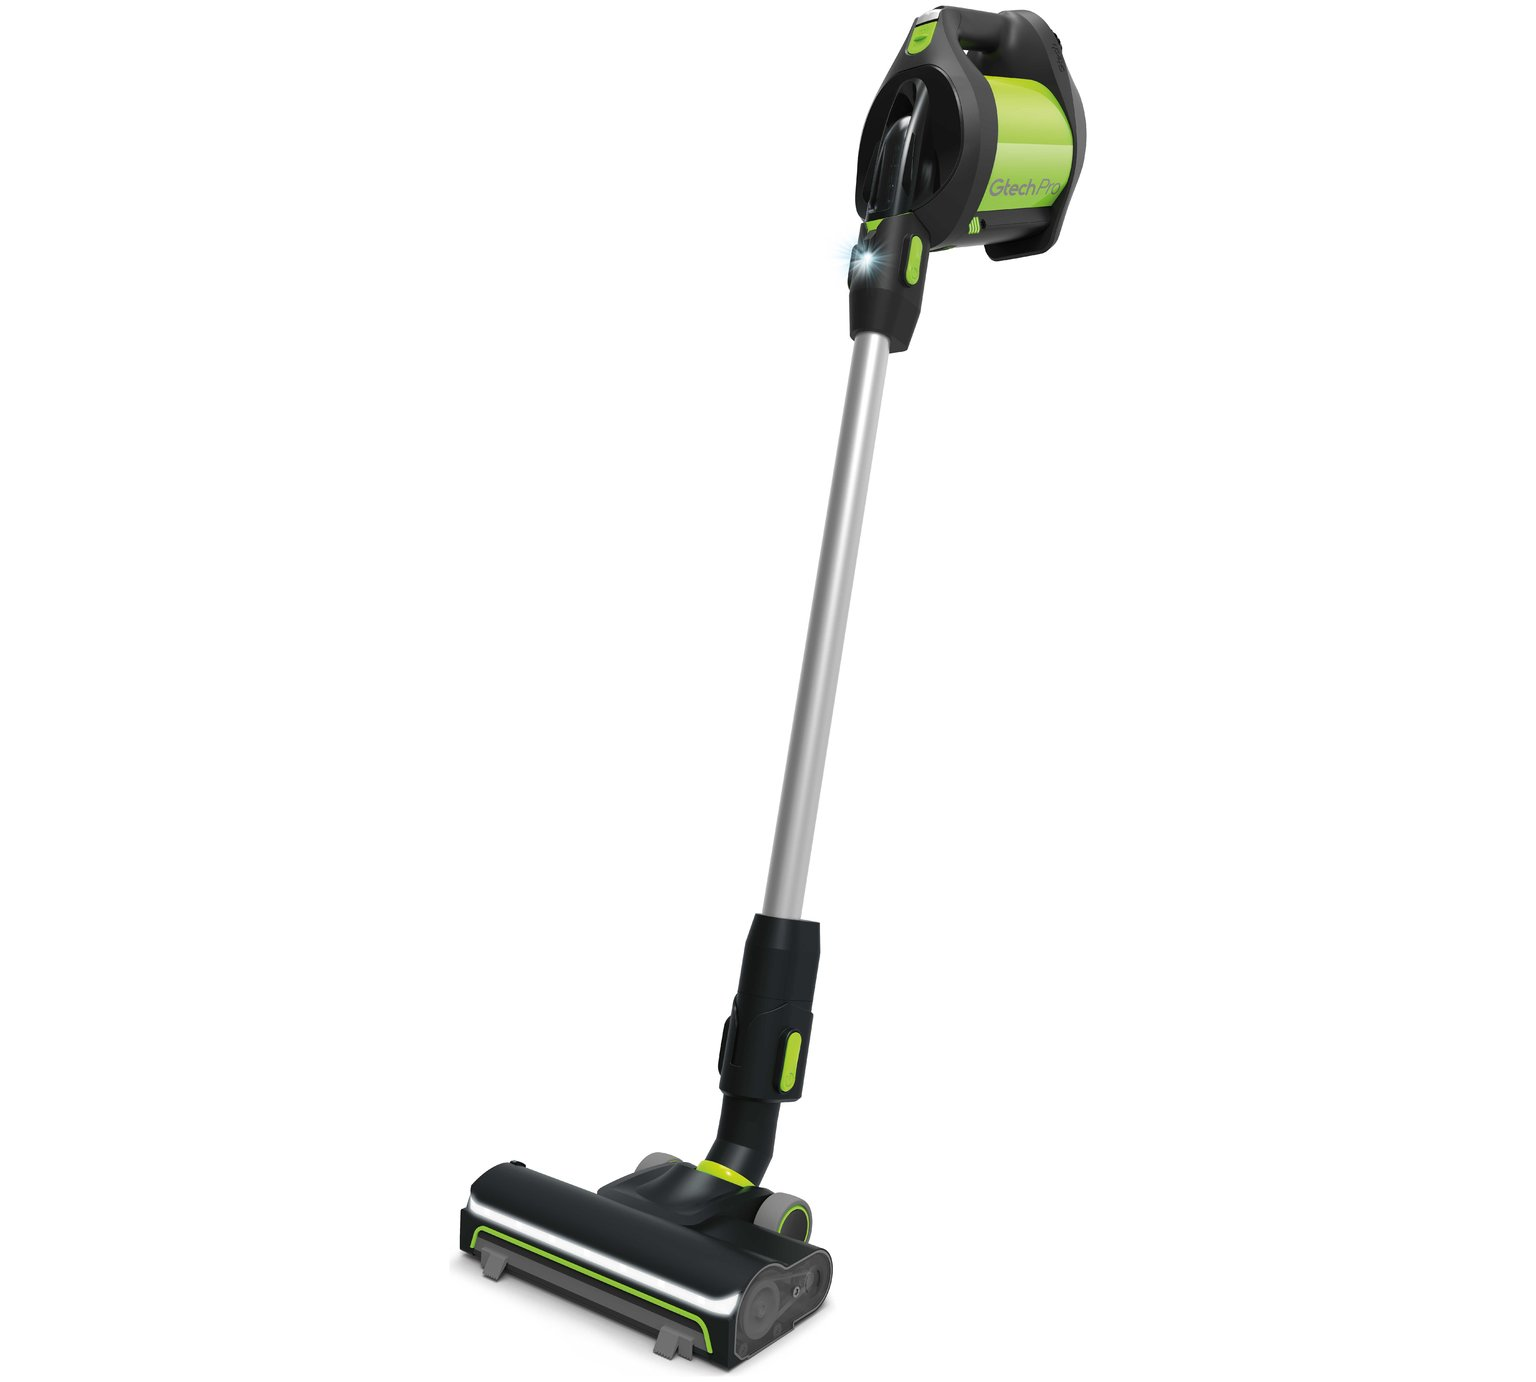 Gtech Pro Cordless Bagged Handstick Vacuum Cleaner by Gtech 806/7502